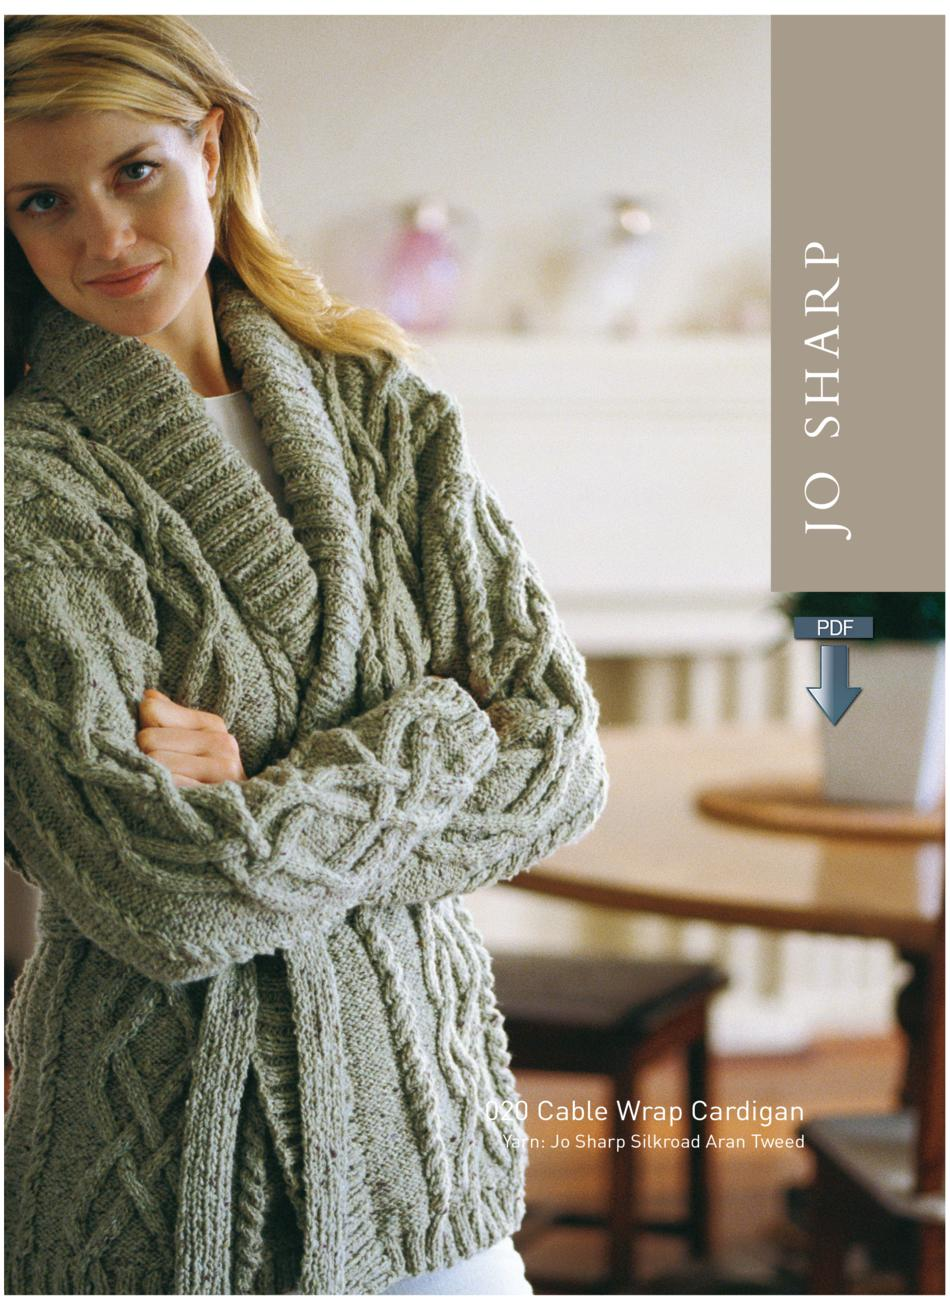 Knitting Pattern Wrap Cardigan : Jo Sharp Cable Wrap Cardigan - Pattern Download, Knitting Pattern - Halcyon Yarn